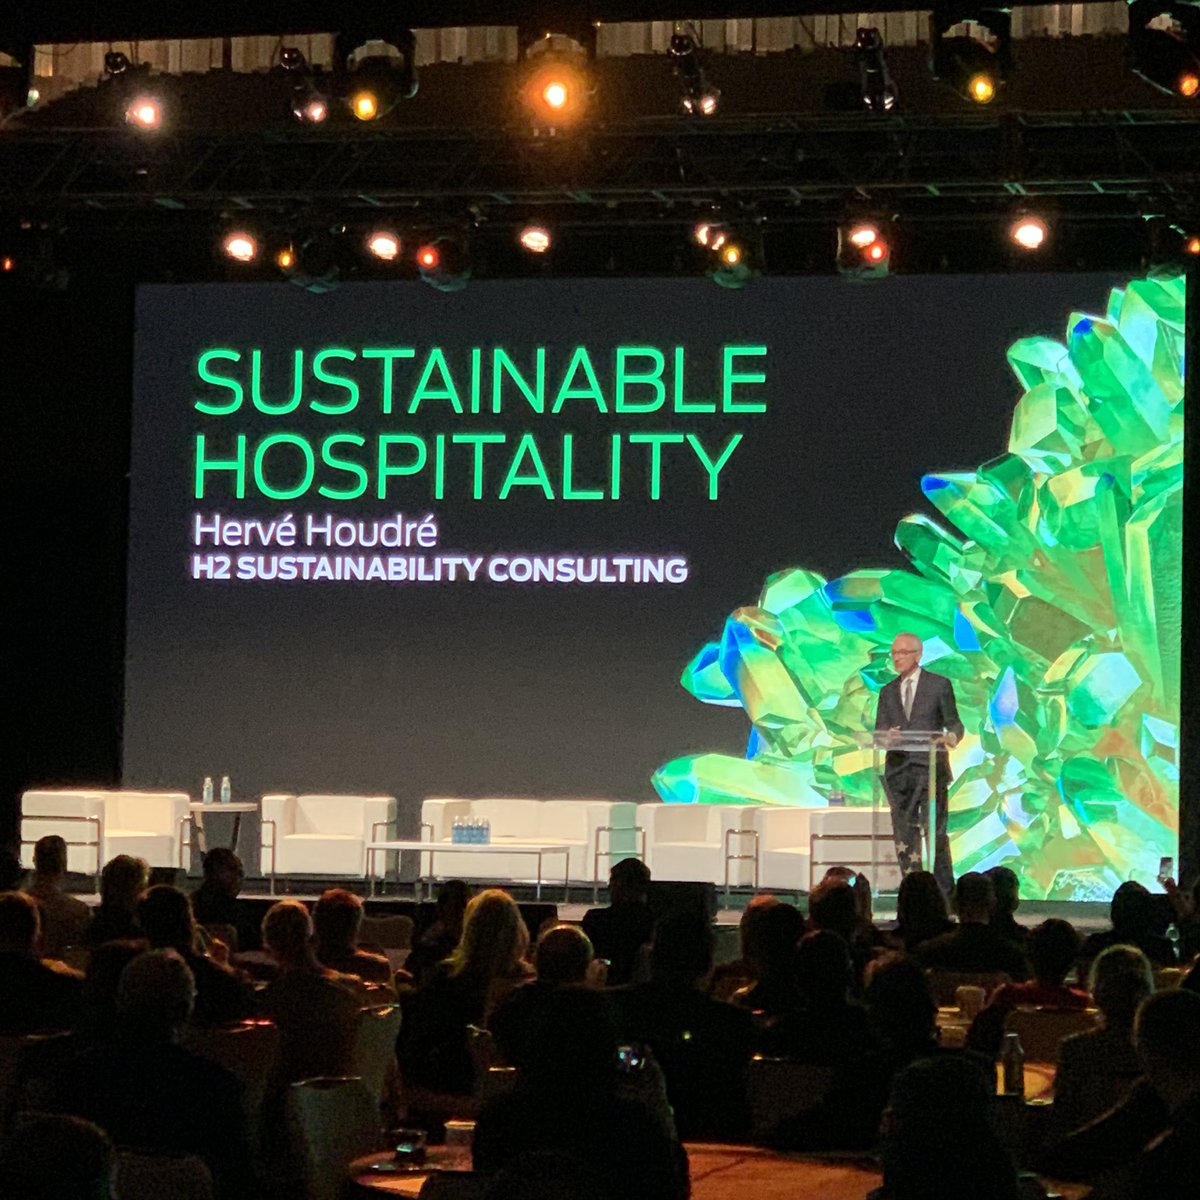 Great opening presentation by Herve Houdre, principal of H2 Sustainability Consulting about #sustainable #hospitality. @Hoteliermag @ForbesInspector @ORHMA @GTHAtweets @hotelassoc